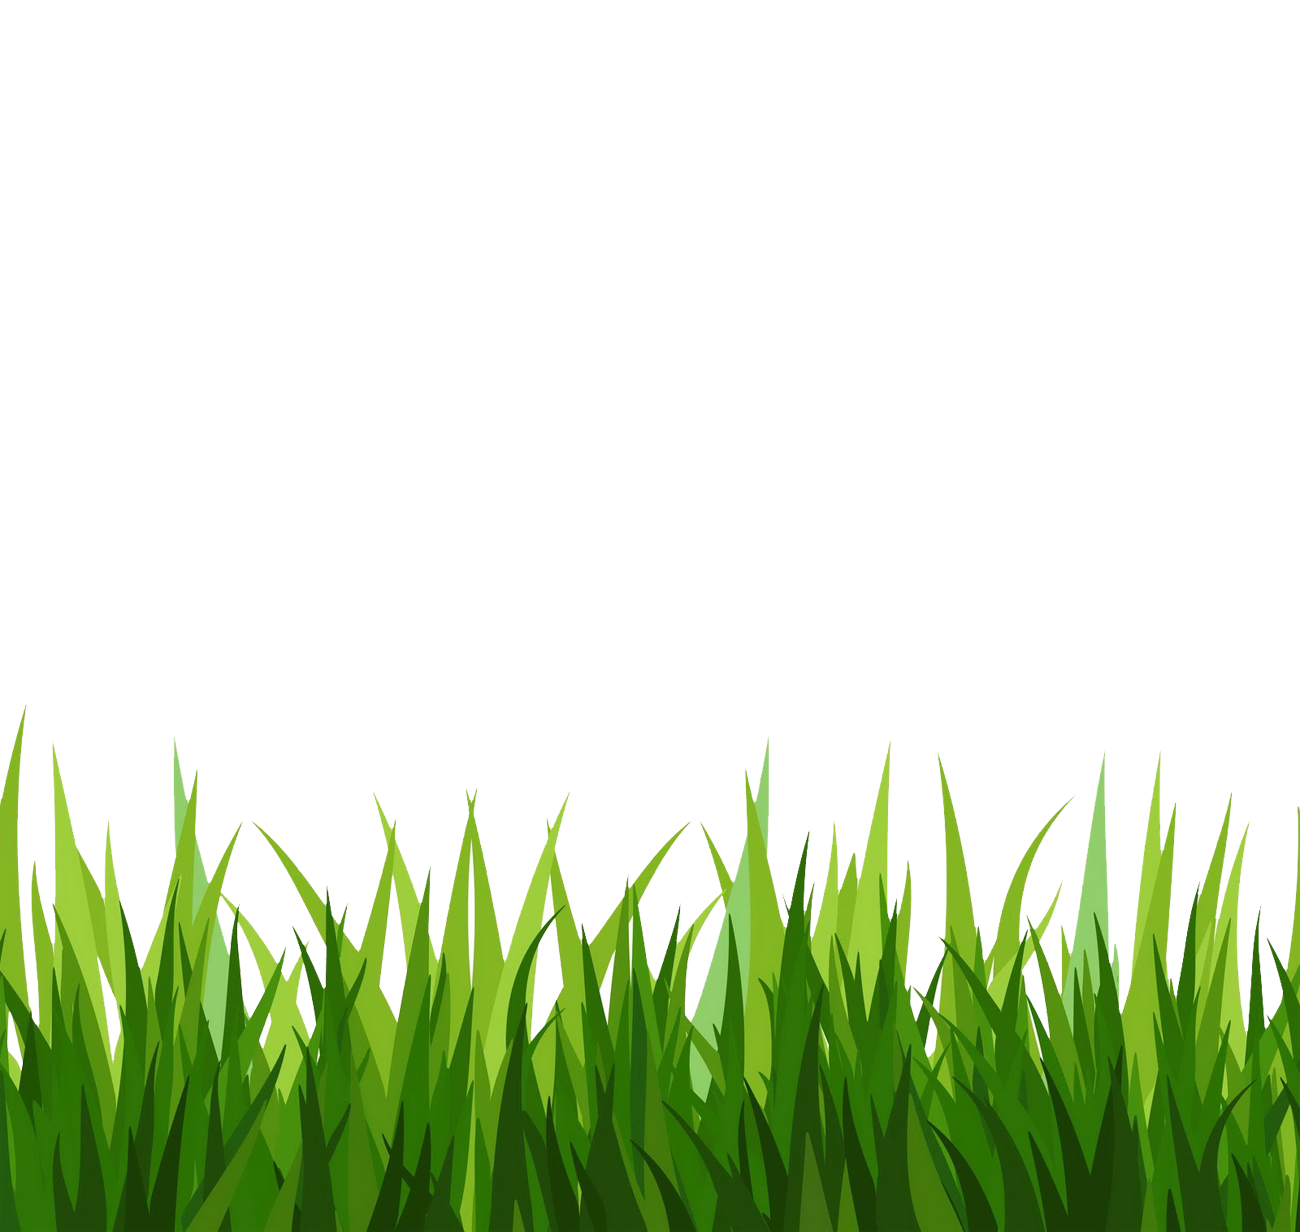 Grass clipart png format. Green free icons and